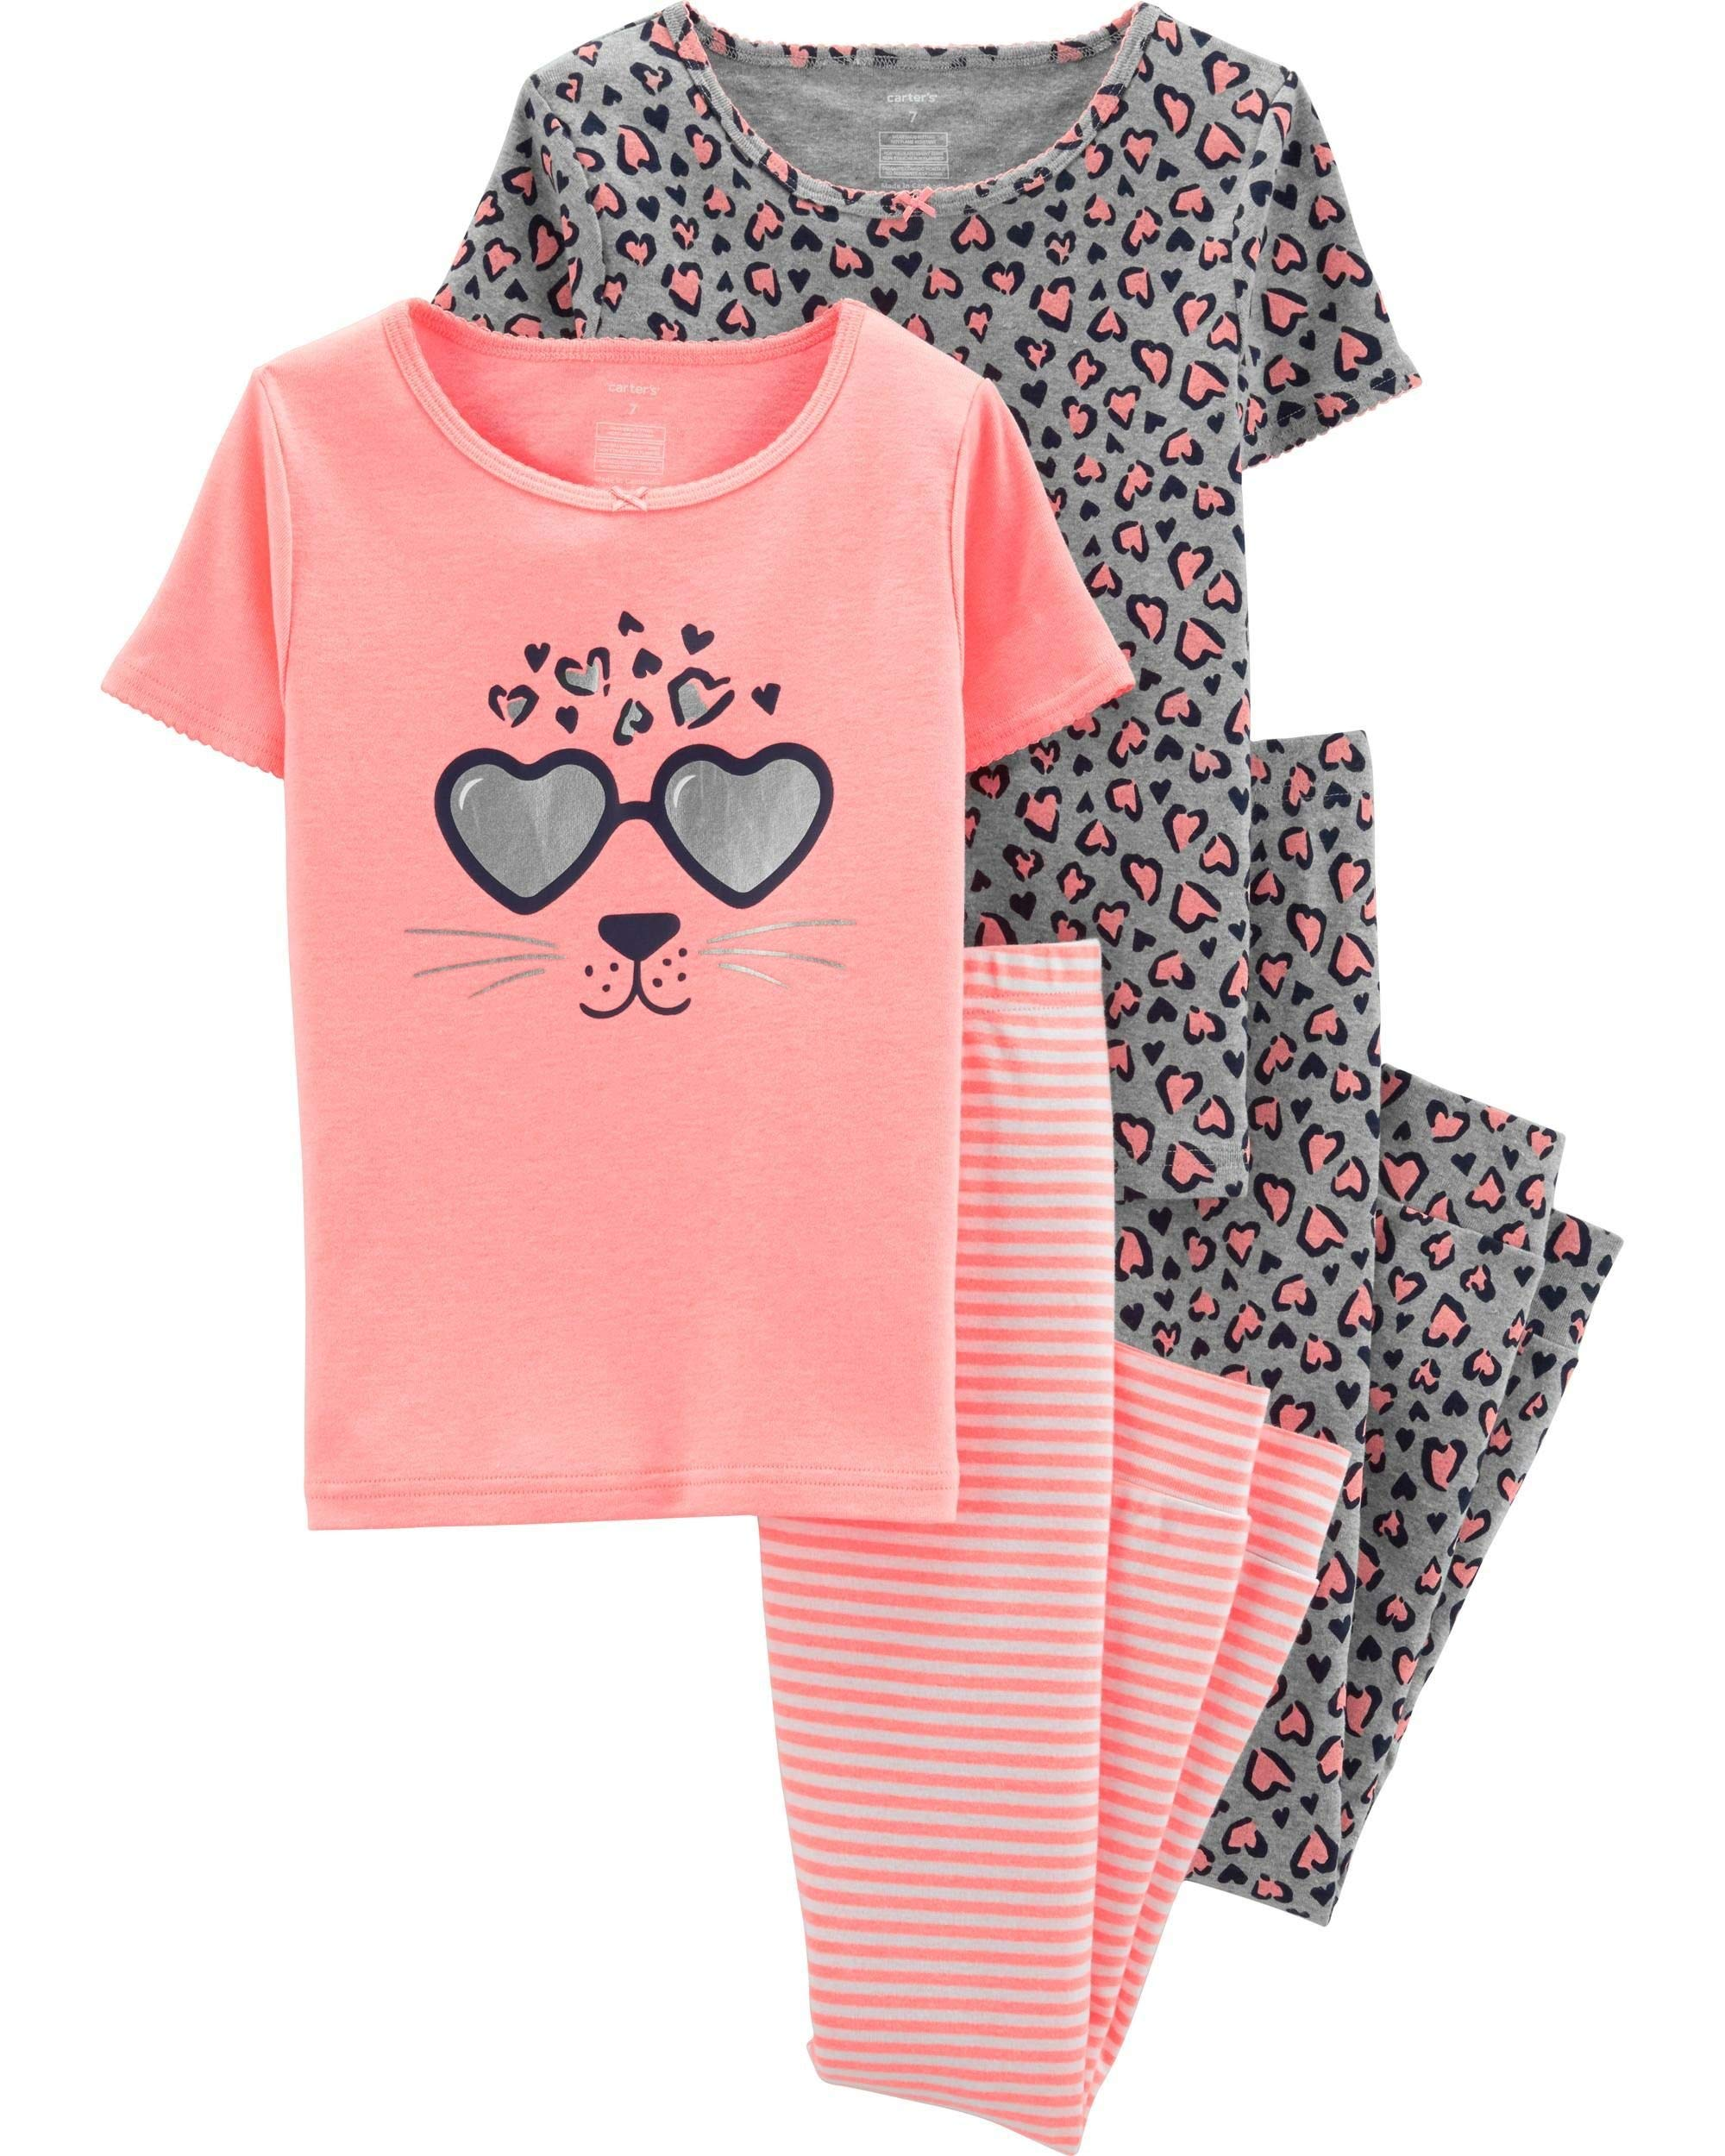 Carter's Girls' Snug Fit Cotton 4 Piece PJ Pajama Sets (Neon Orange/Leopard, 7)